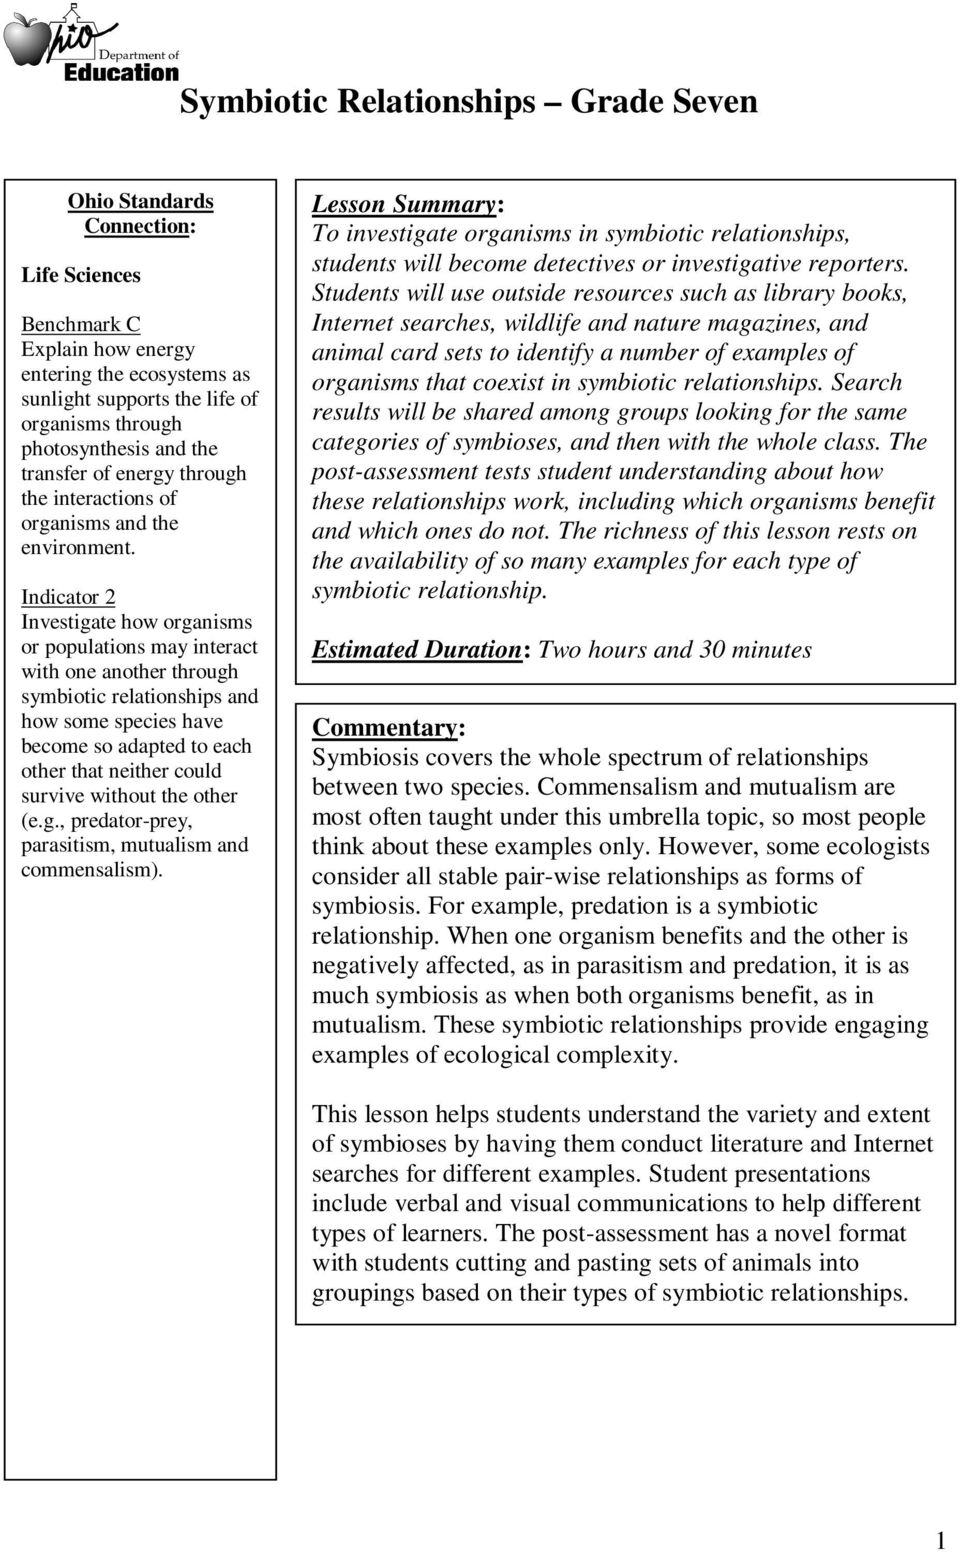 Worksheets Symbiotic Relationships Worksheet symbiotic relationships grade seven pdf indicator 2 investigate how organisms or populations may interact with one another through and